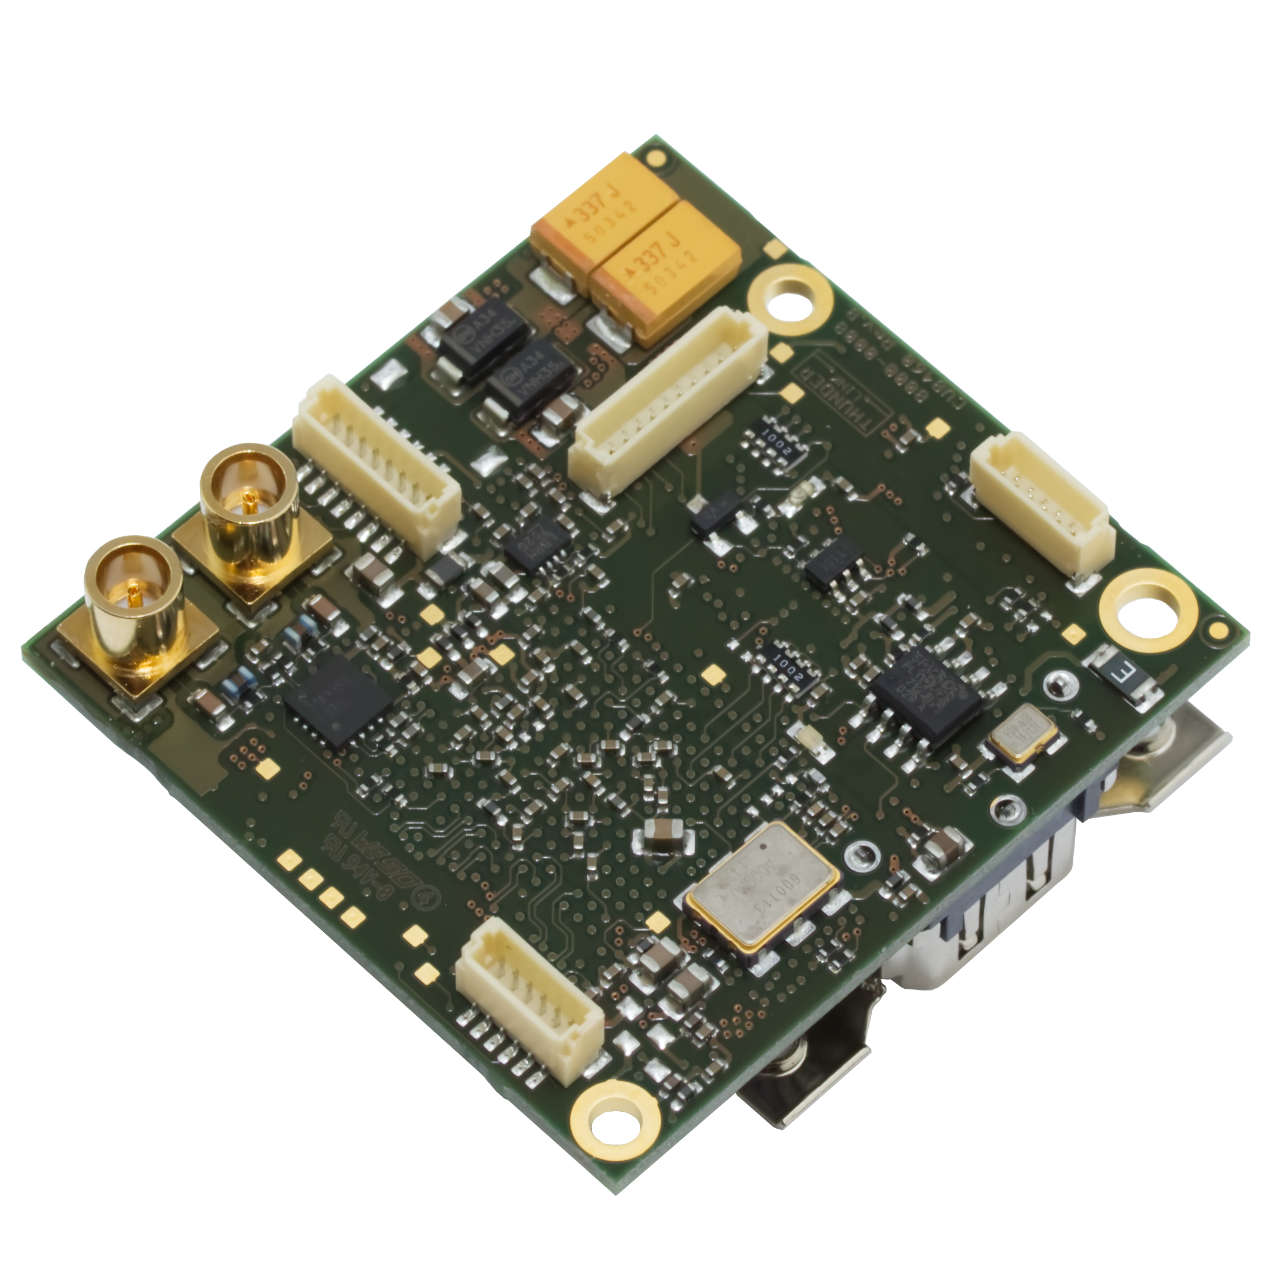 TL7050 |  Dual HD-SDI and HDMI Interface